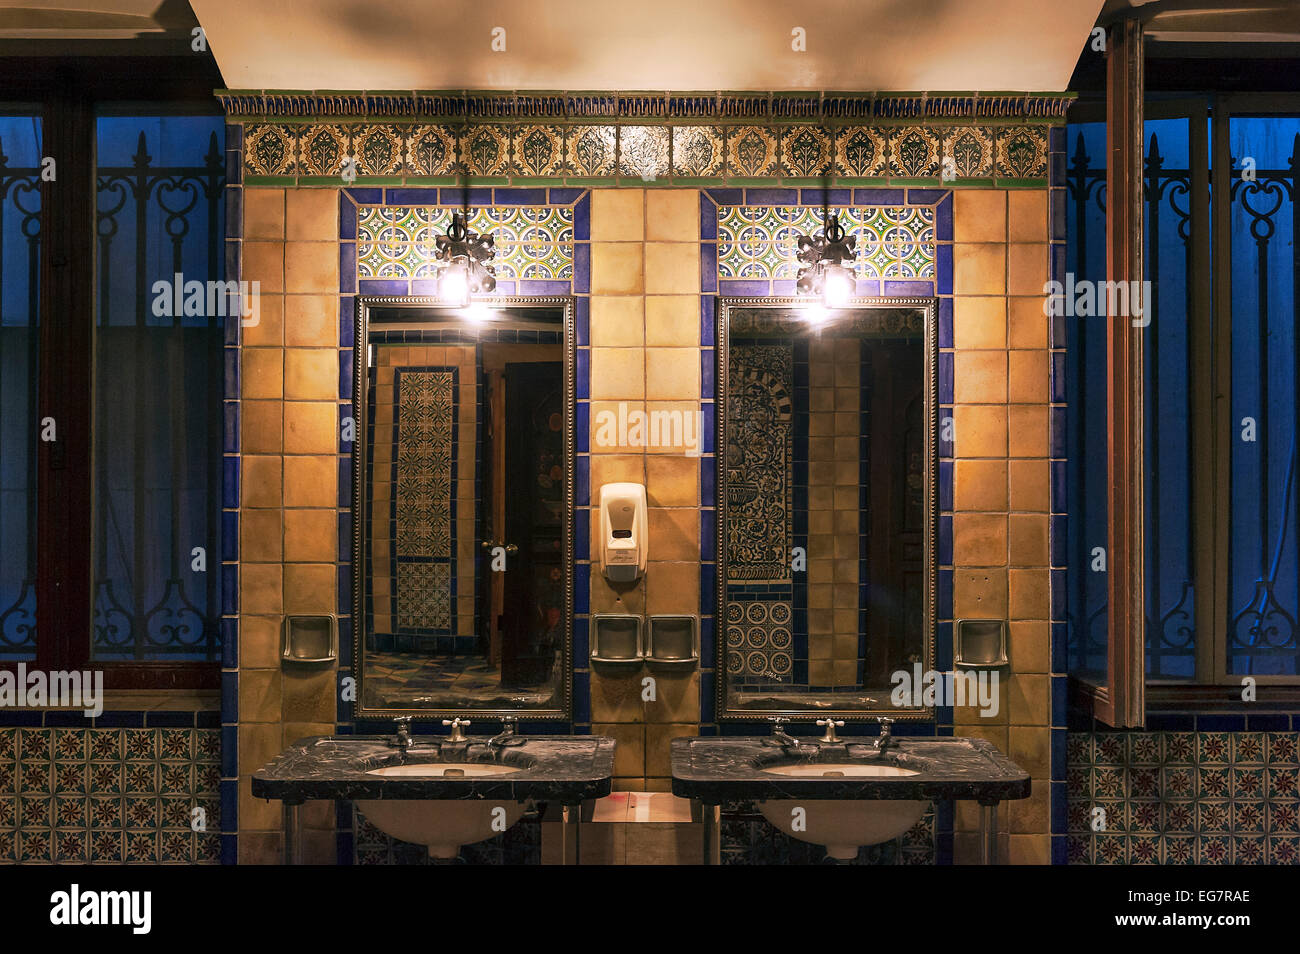 Public Design Stock Photos & Public Design Stock Images - Alamy